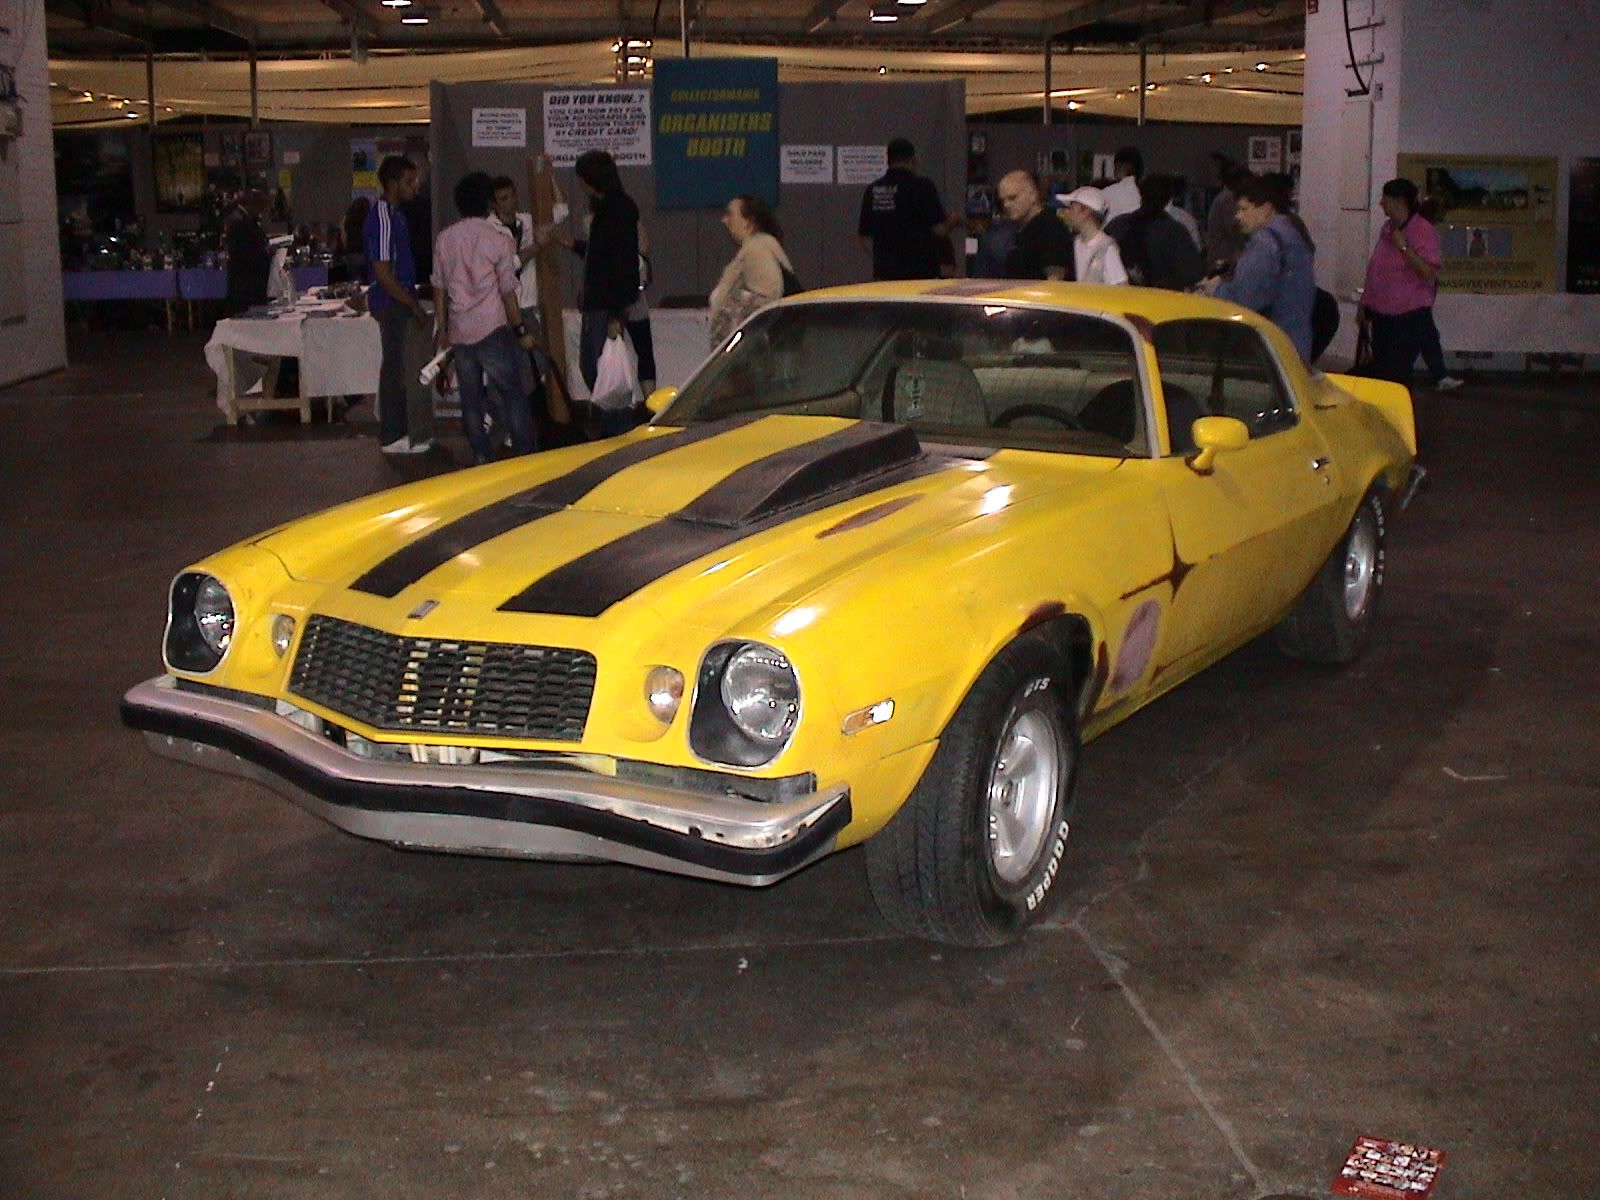 The Bumblebee Old Camaro From The New Transformers Movie